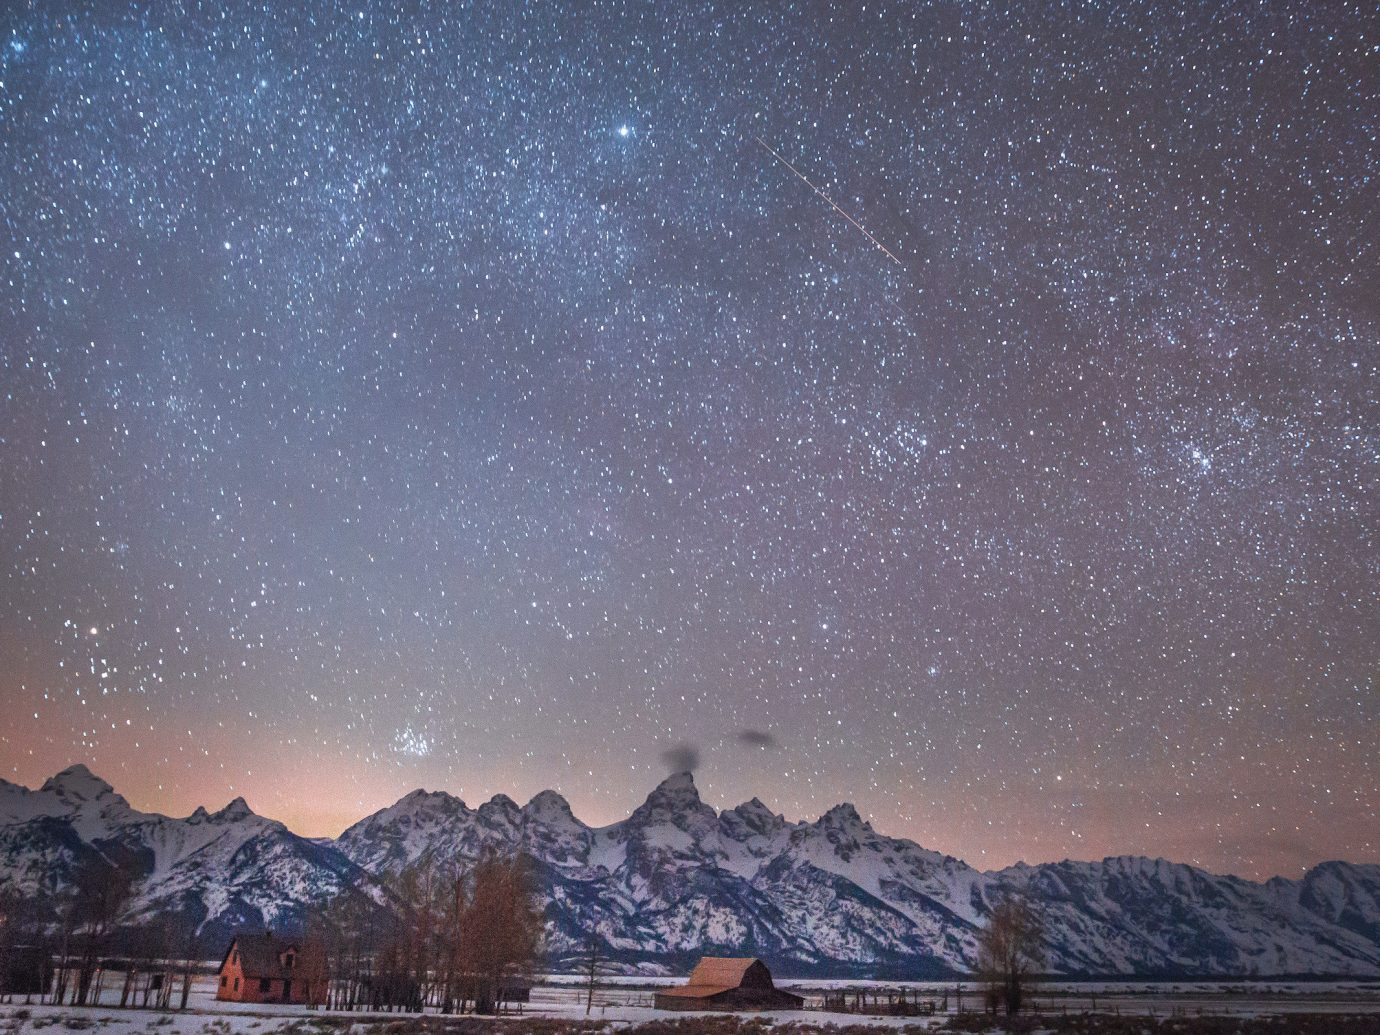 Trip Ideas snow outdoor mountain sky Nature atmosphere night Winter outer space freezing phenomenon astronomical object geological phenomenon galaxy dawn star mountain range evening space tree landscape computer wallpaper astronomy horizon Night Sky distance